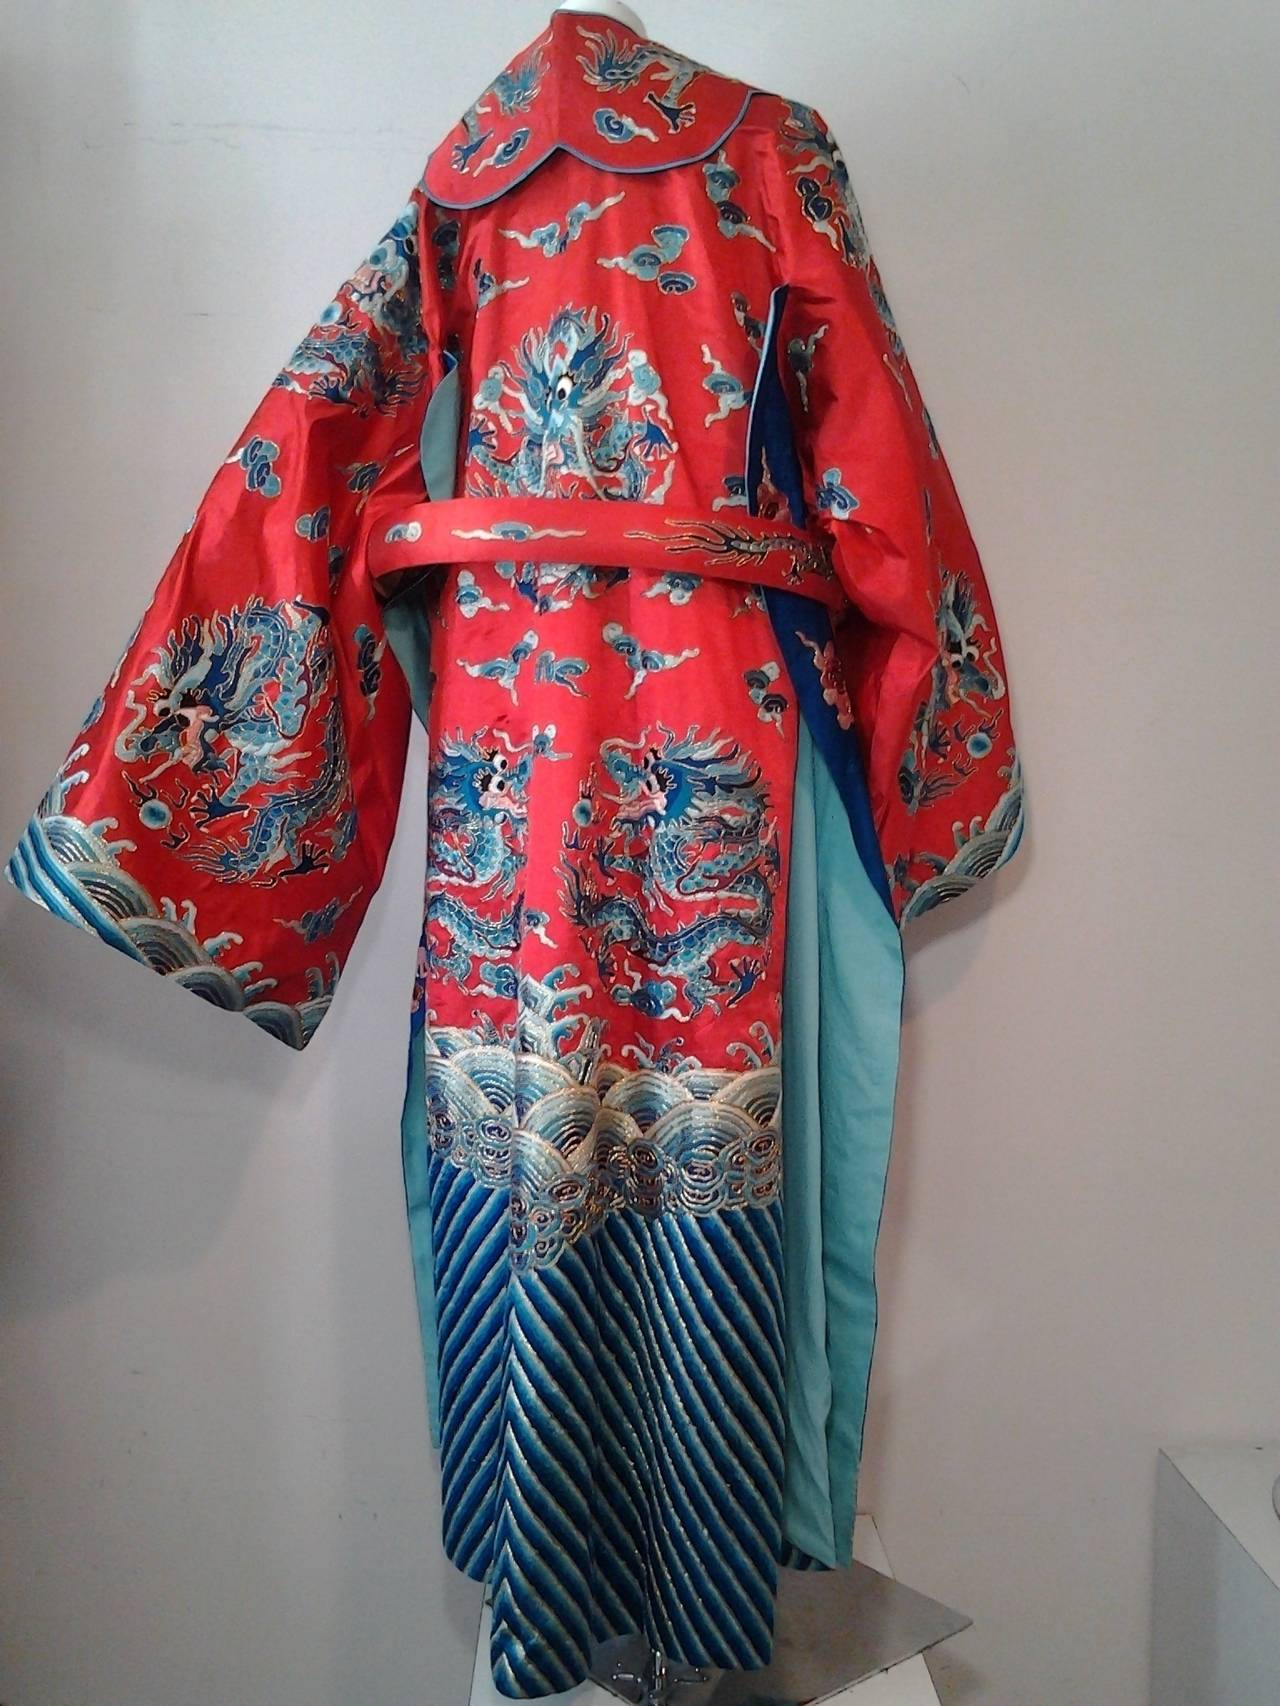 1940s Chinese Red Dragon Robe 3 Pieces 3